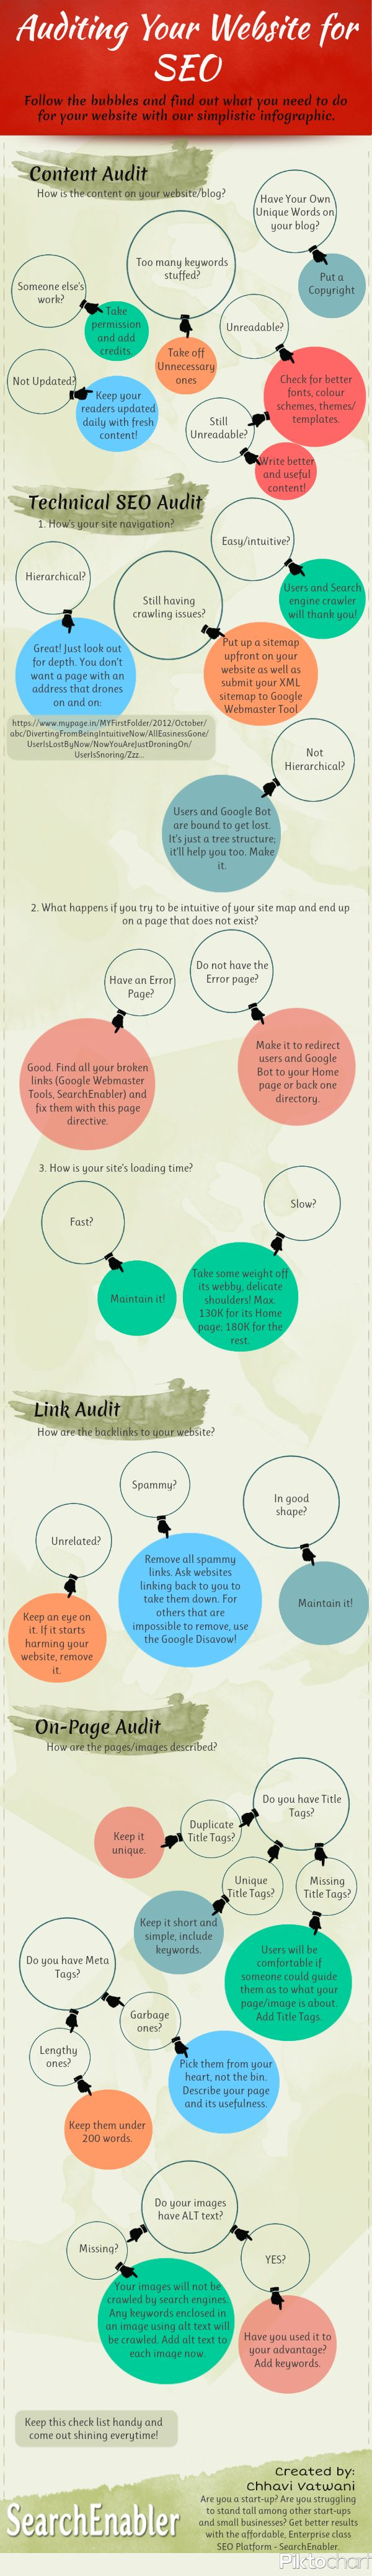 How To SEO Audit Your Website - A Walkthrough-Graphic | Created by Chhavi Vatwani of SearchEnabler, via Soulati Media | #seo #infographic